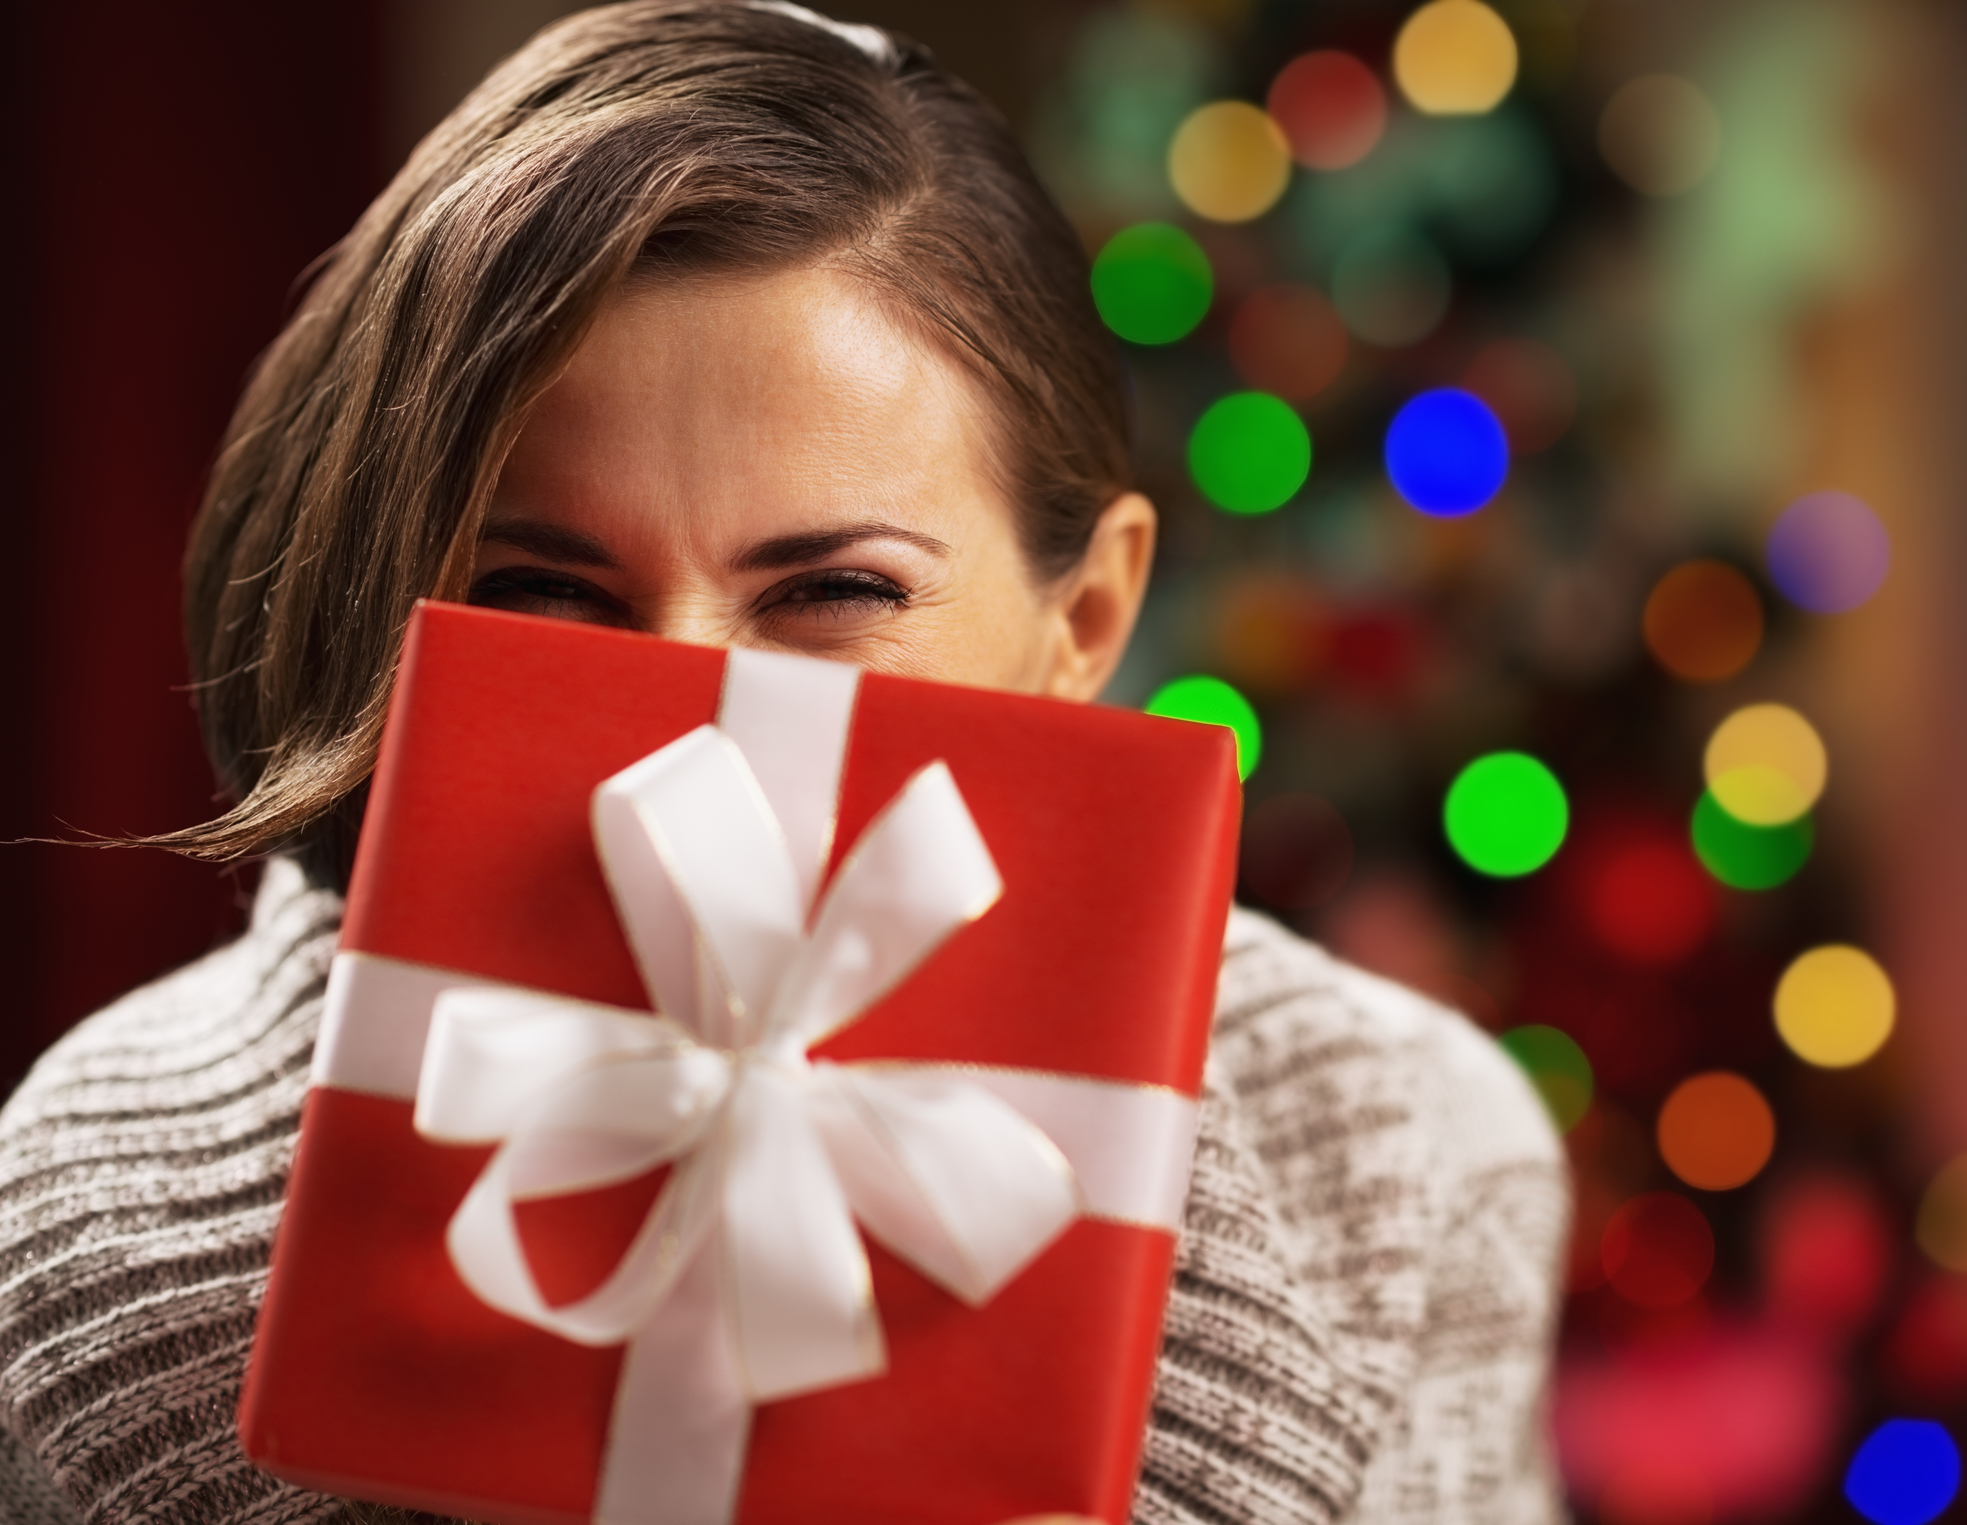 5 Tips for Giving the Perfect Gift